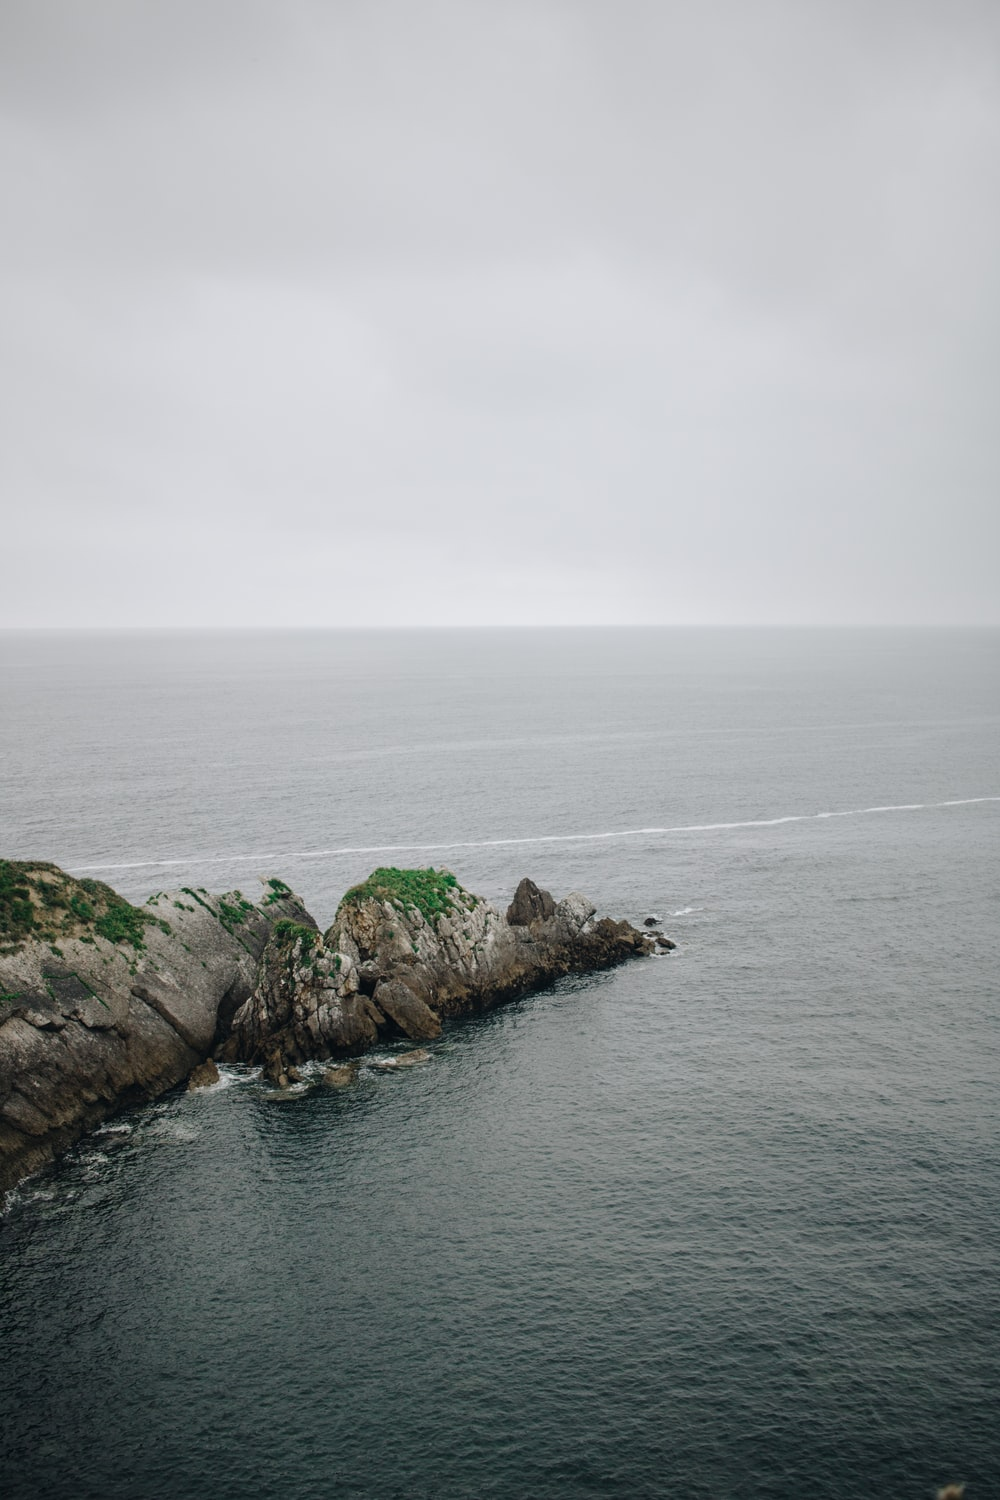 green and gray rock formation surrounded by water during daytime